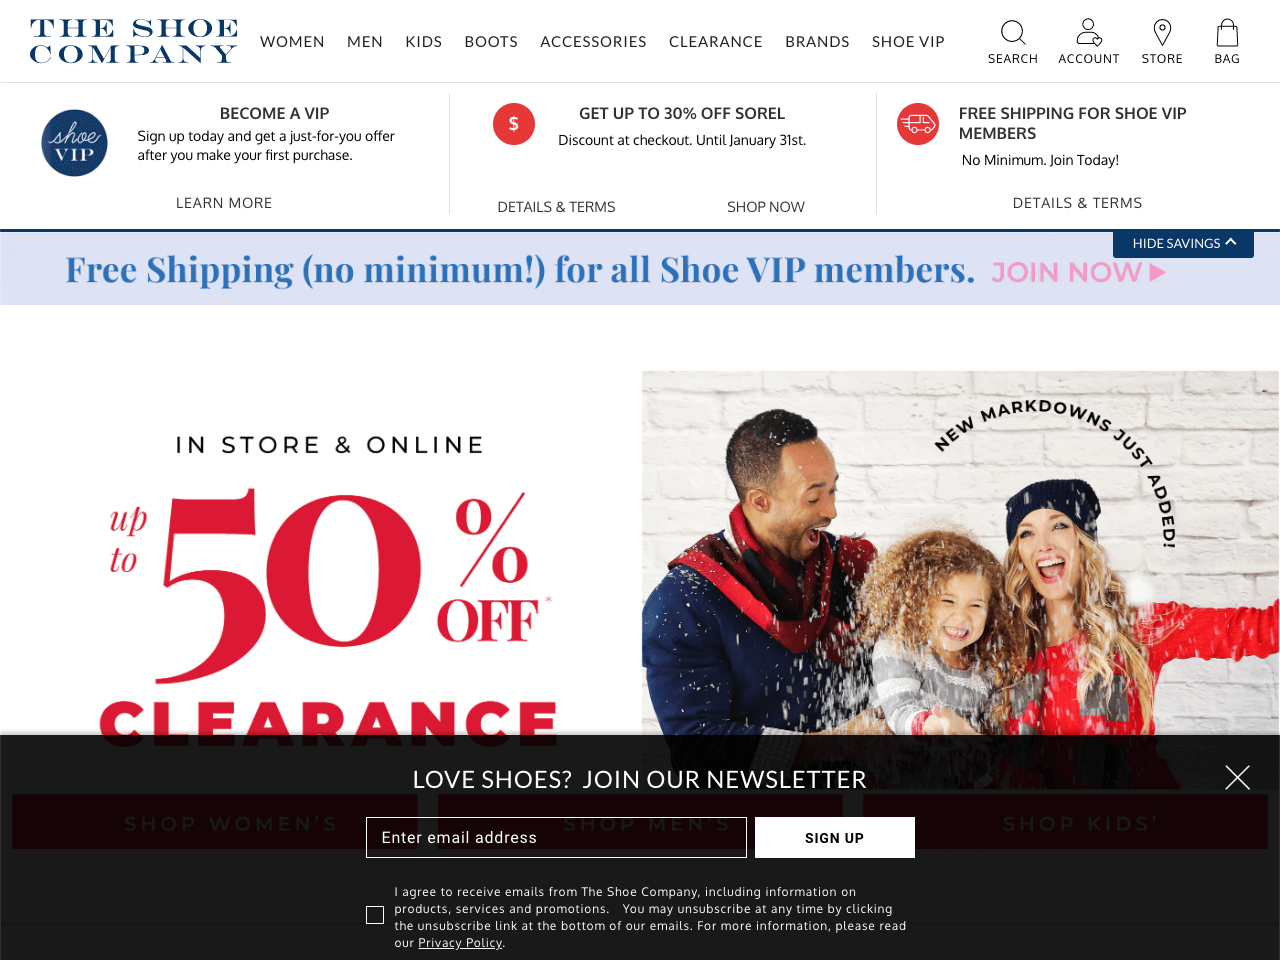 The Shoe Company features a huge email subscription bar at the bottom of the page